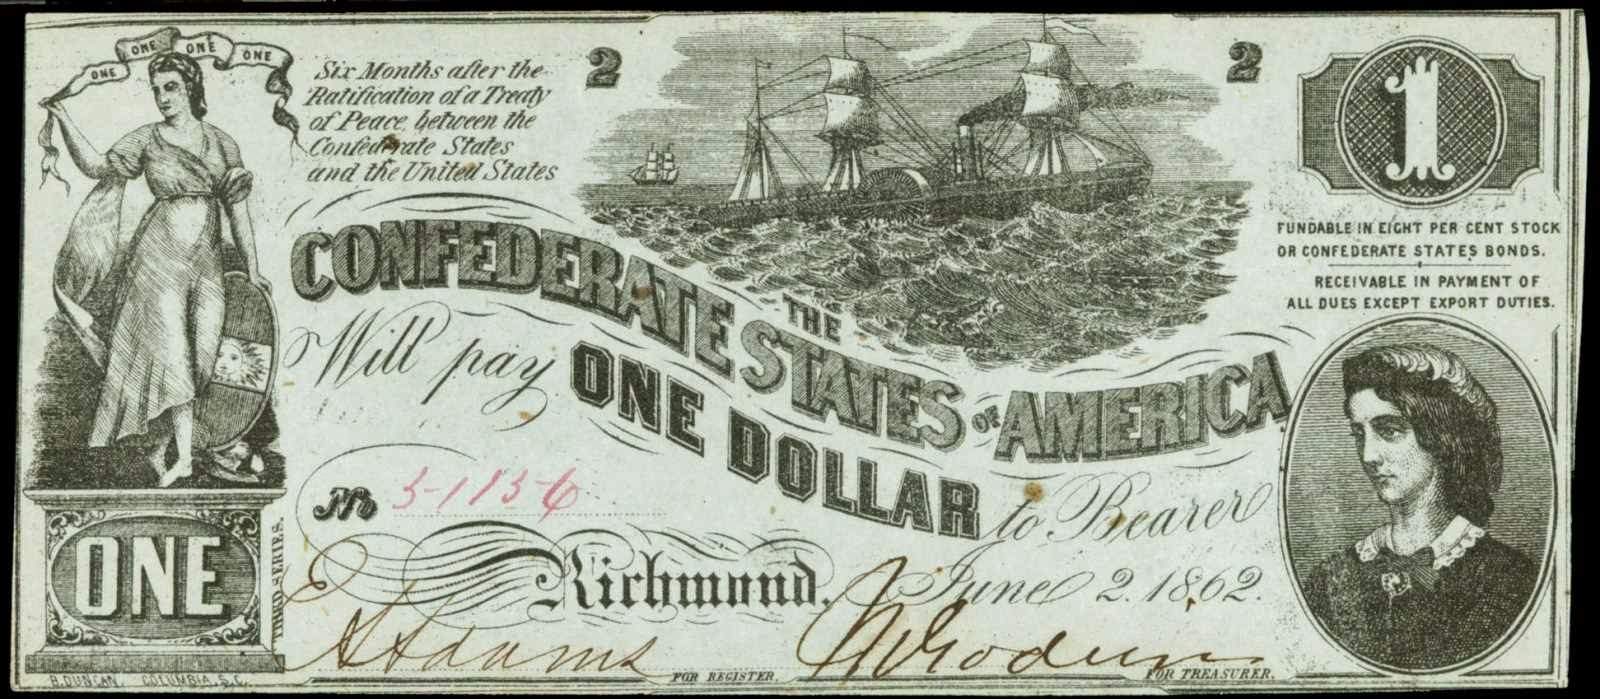 Confederate States of America Dollar 1862 Lucy Pickens